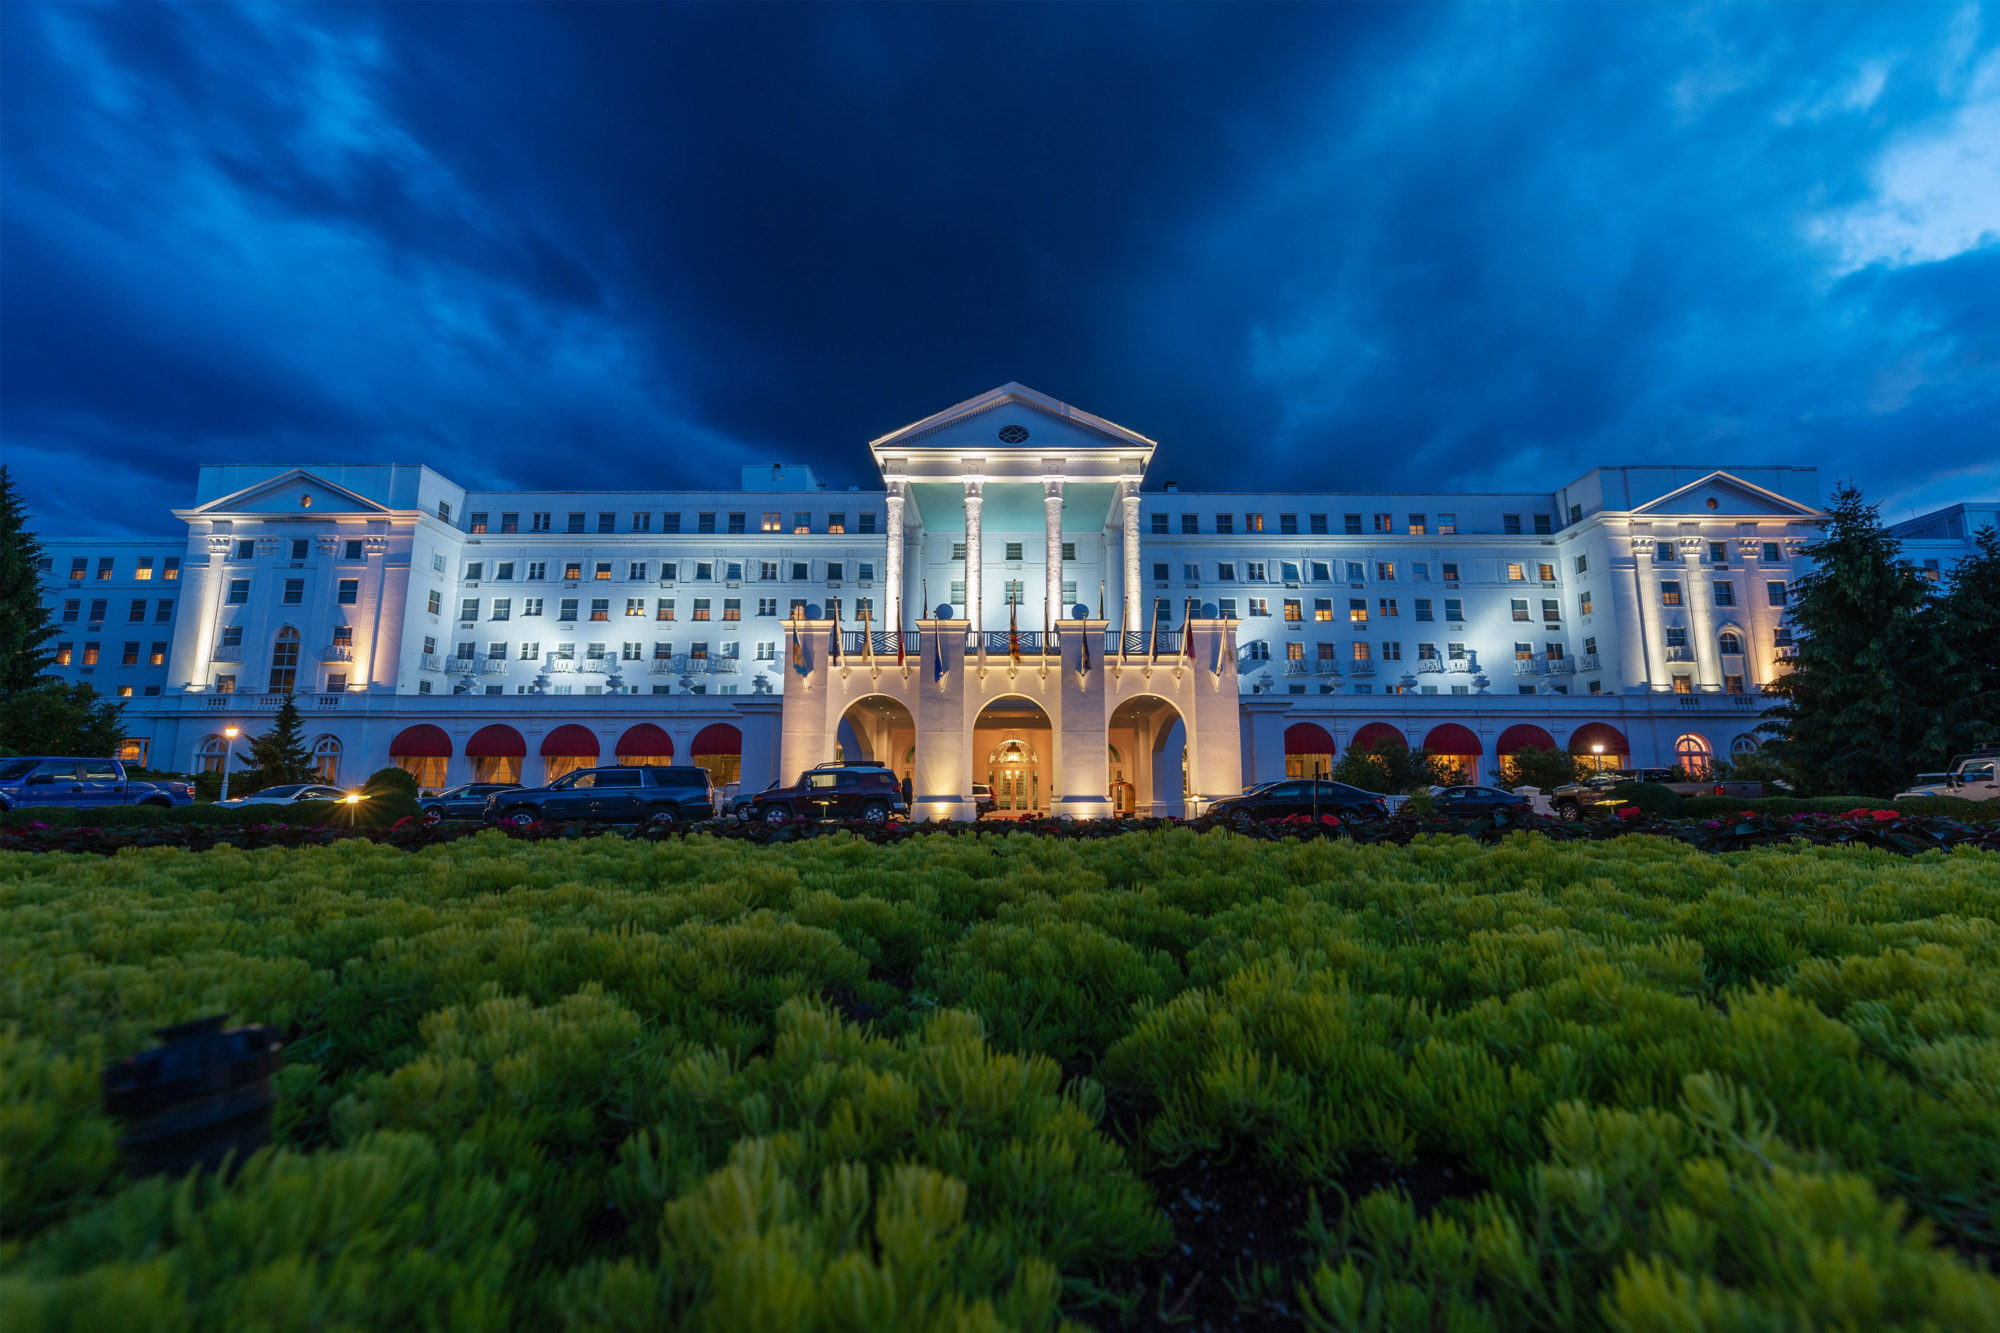 Welcome to the Greenbrier, the Governor-Owned Luxury Resort Filled With Conflicts of Interest